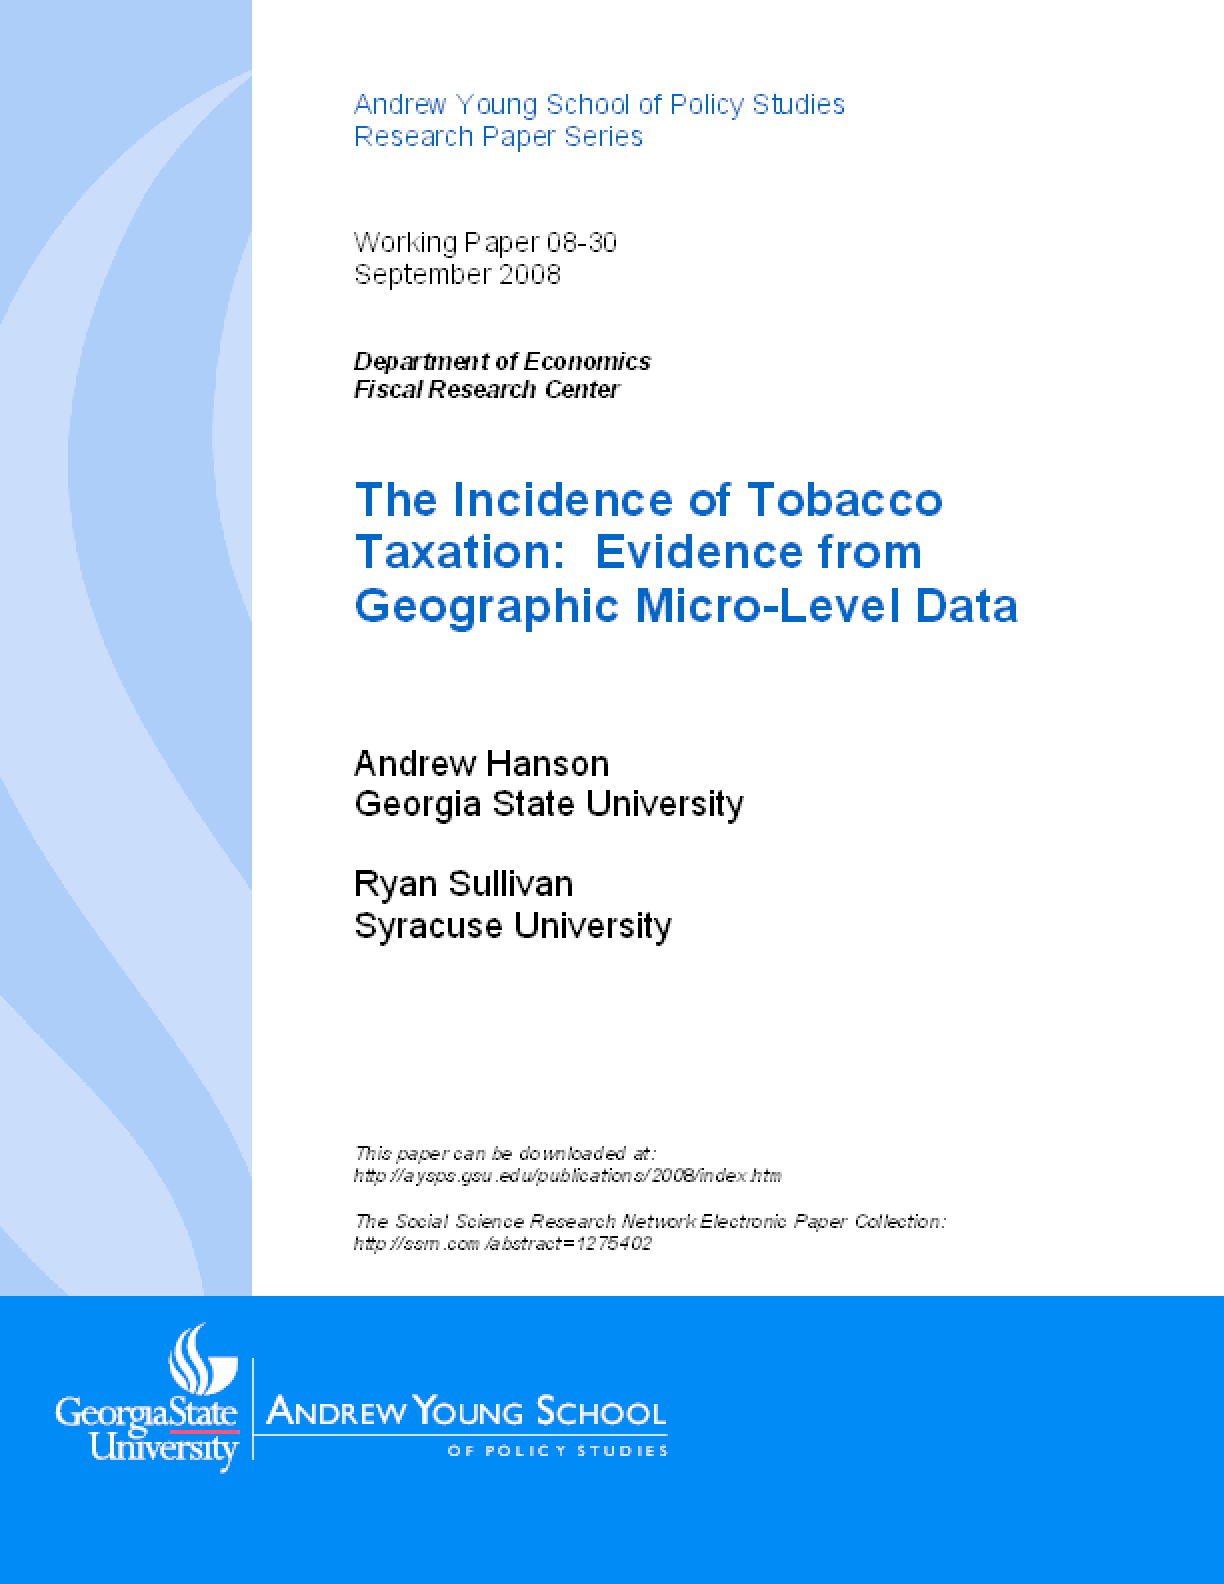 The Incidence of Tobacco Taxation: Evidence from Geographic Micro-Level Data